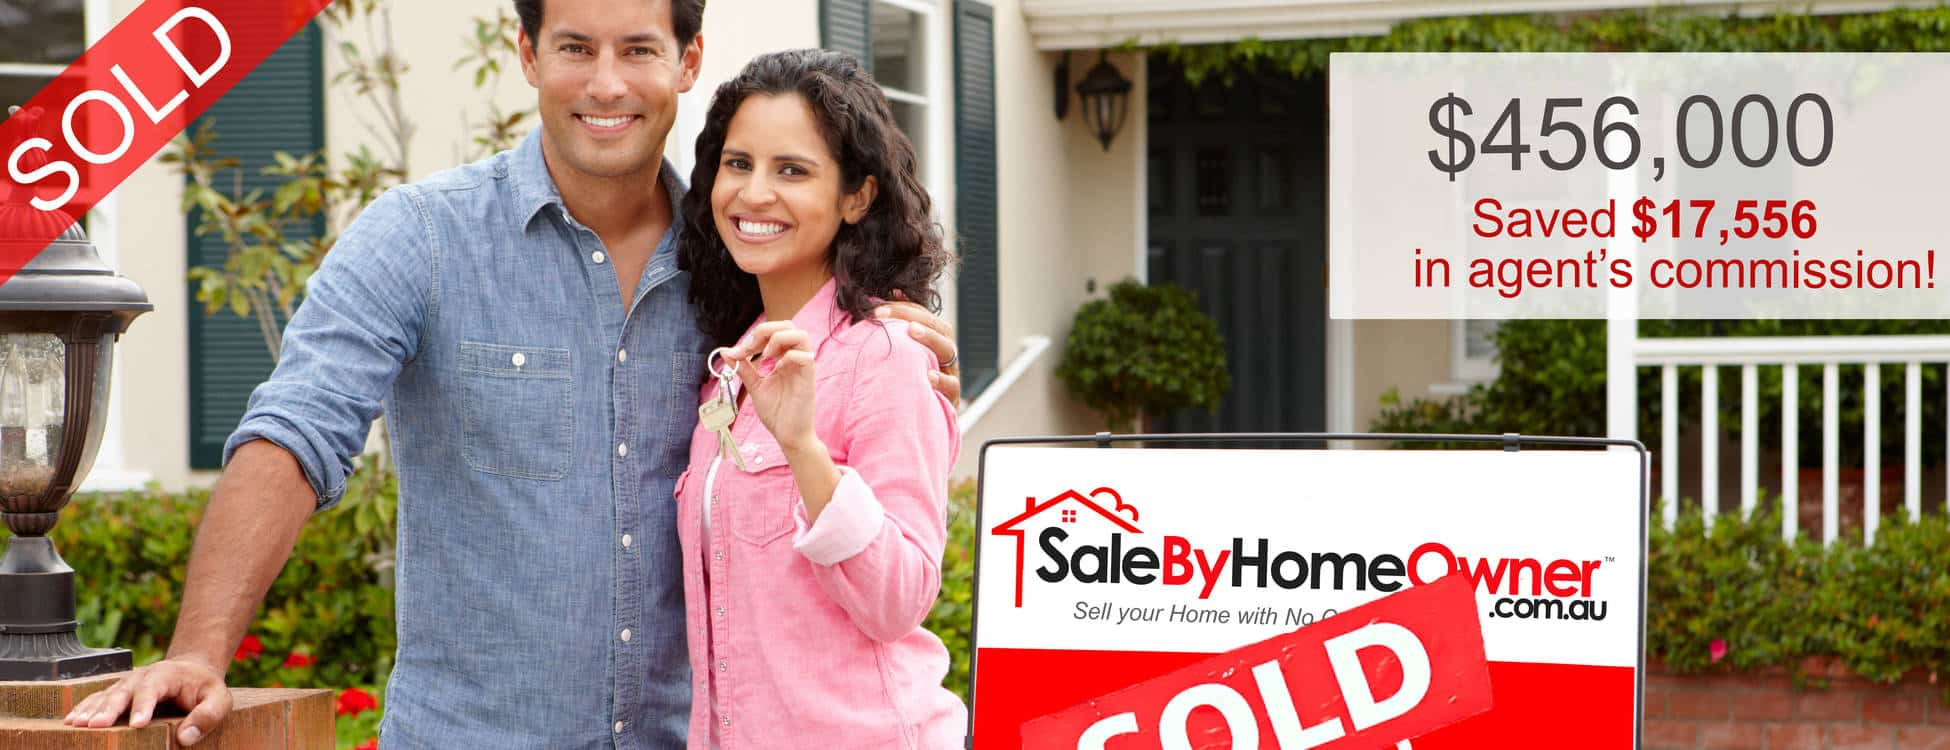 How to sell My Home Myself